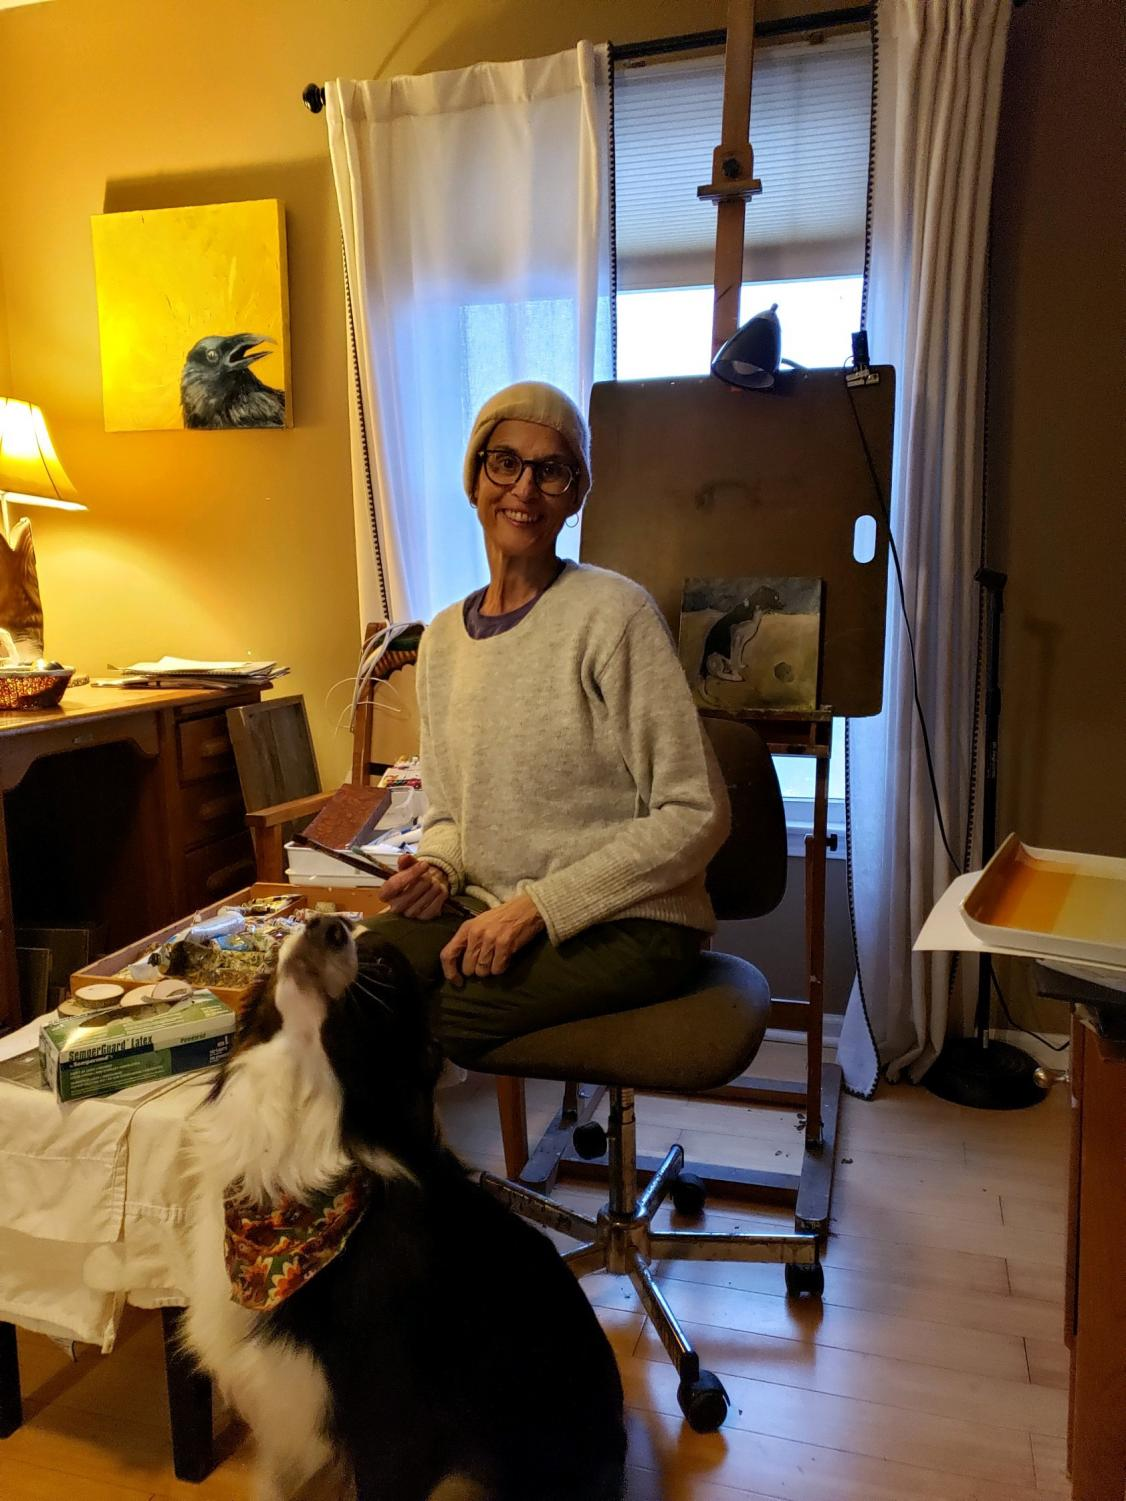 Elena+Flores+sits+in+her+home+studio.+She%27s+been+painting+small+pieces+for+friends+and+family.+%22It%27s+a+safe+place+to+be%2C+it%27s+a+place+that+I+can+just+do+it+without+judgement%2C%22+said+Flores+on+art.